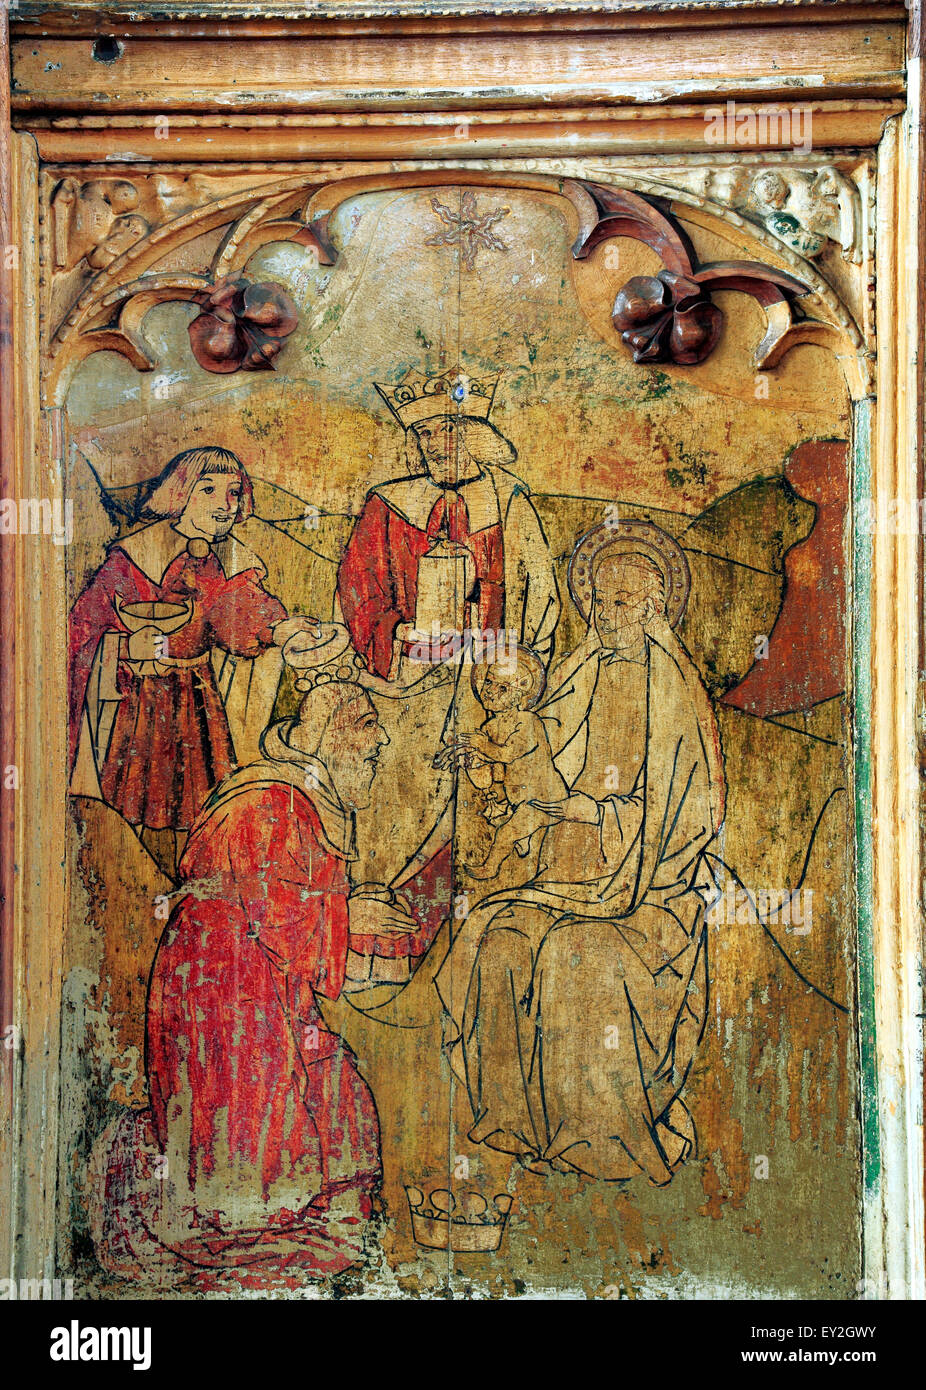 Adoration of the Magi, Three Wise Men, Loddon, Norfolk, medieval rood screen, gifts of gold, frankincense, myrrh, - Stock Image